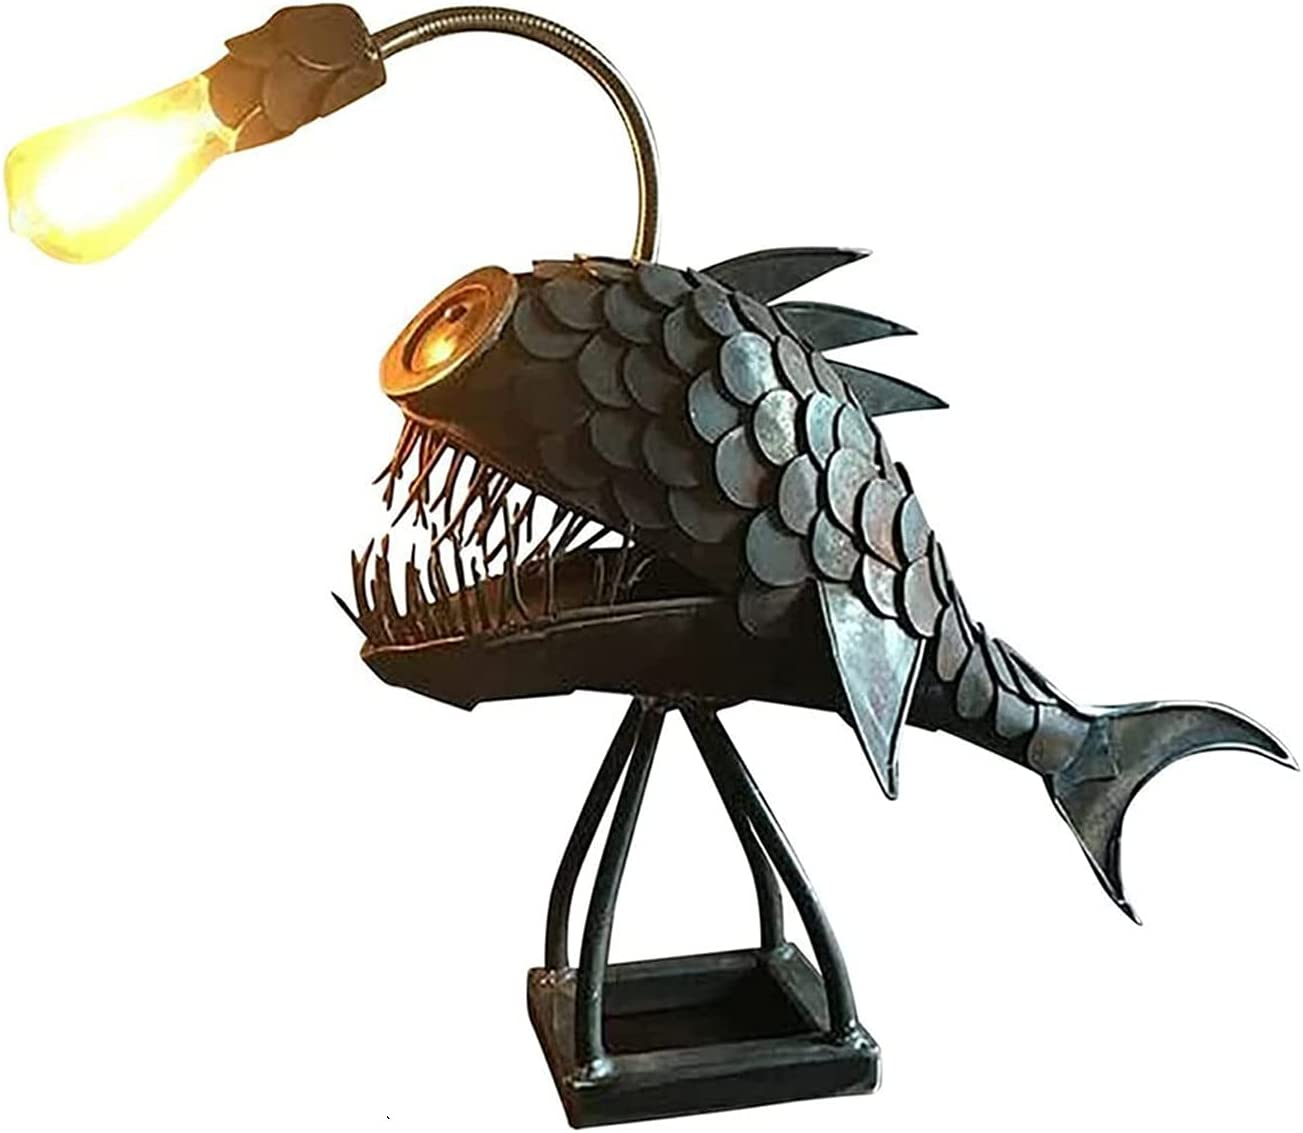 Metal Angler Fish, Creative Table Lamp with USB Port, Metal Shark Table Lamp, Flexible Lamp Head for Adjustments, for Bedroom, Living Room, Home Decor (12in)